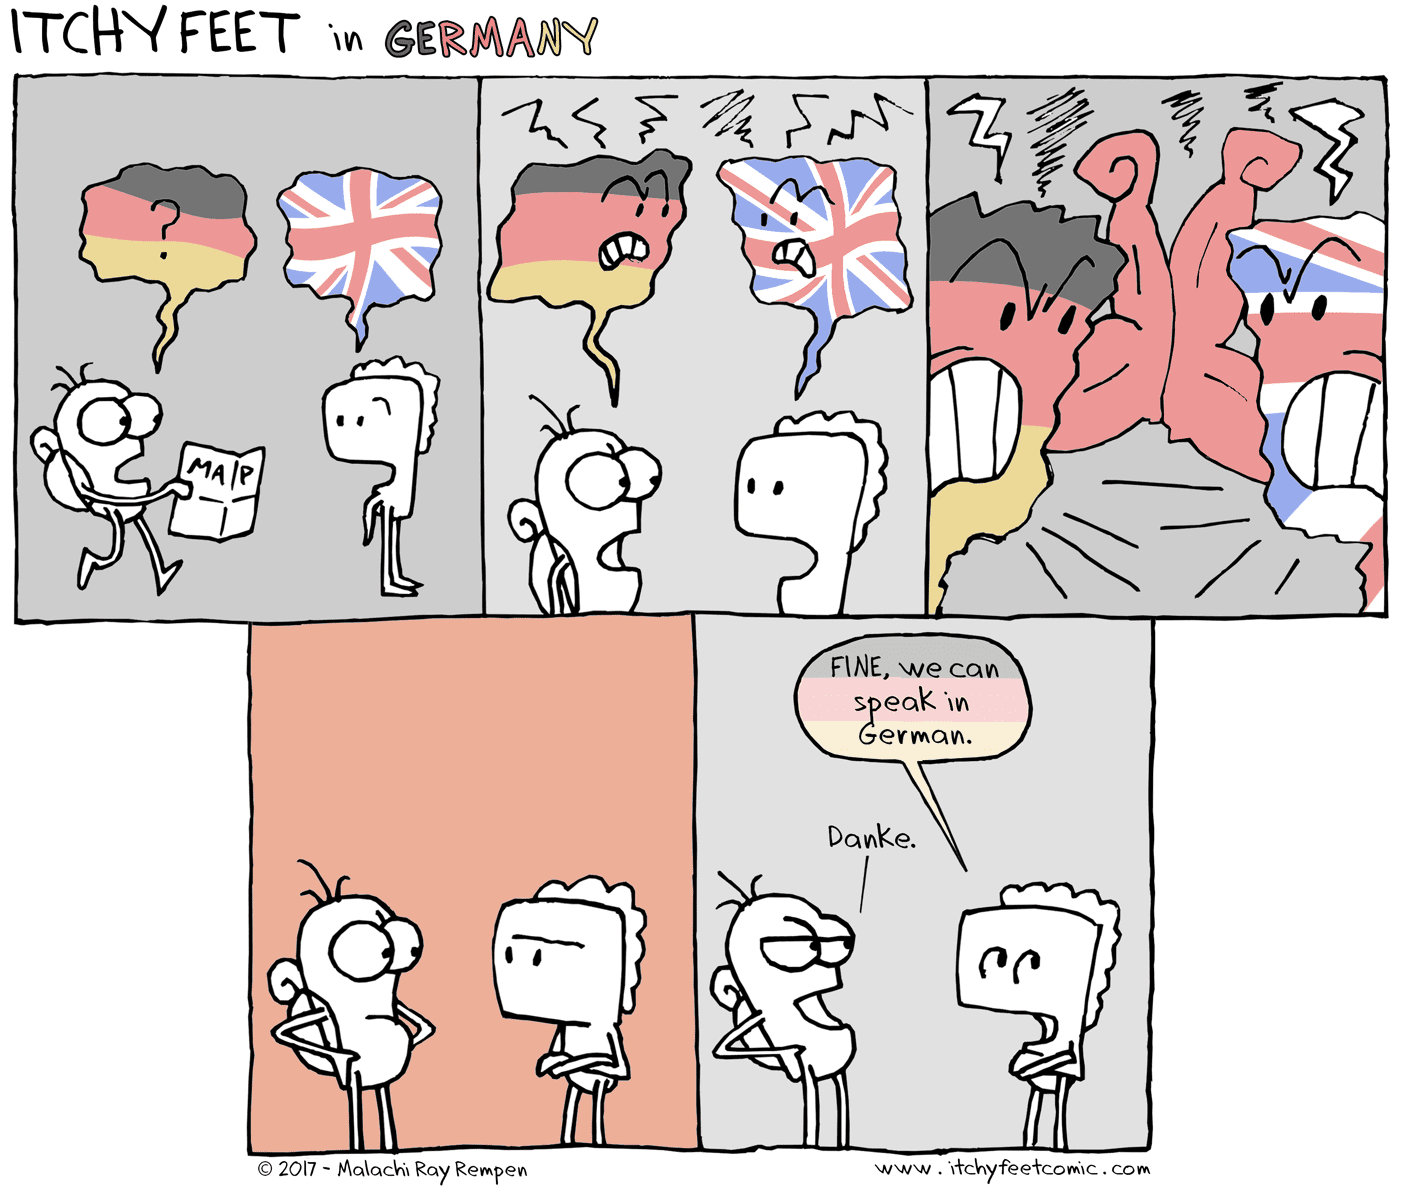 You have to force Germans not to speak English